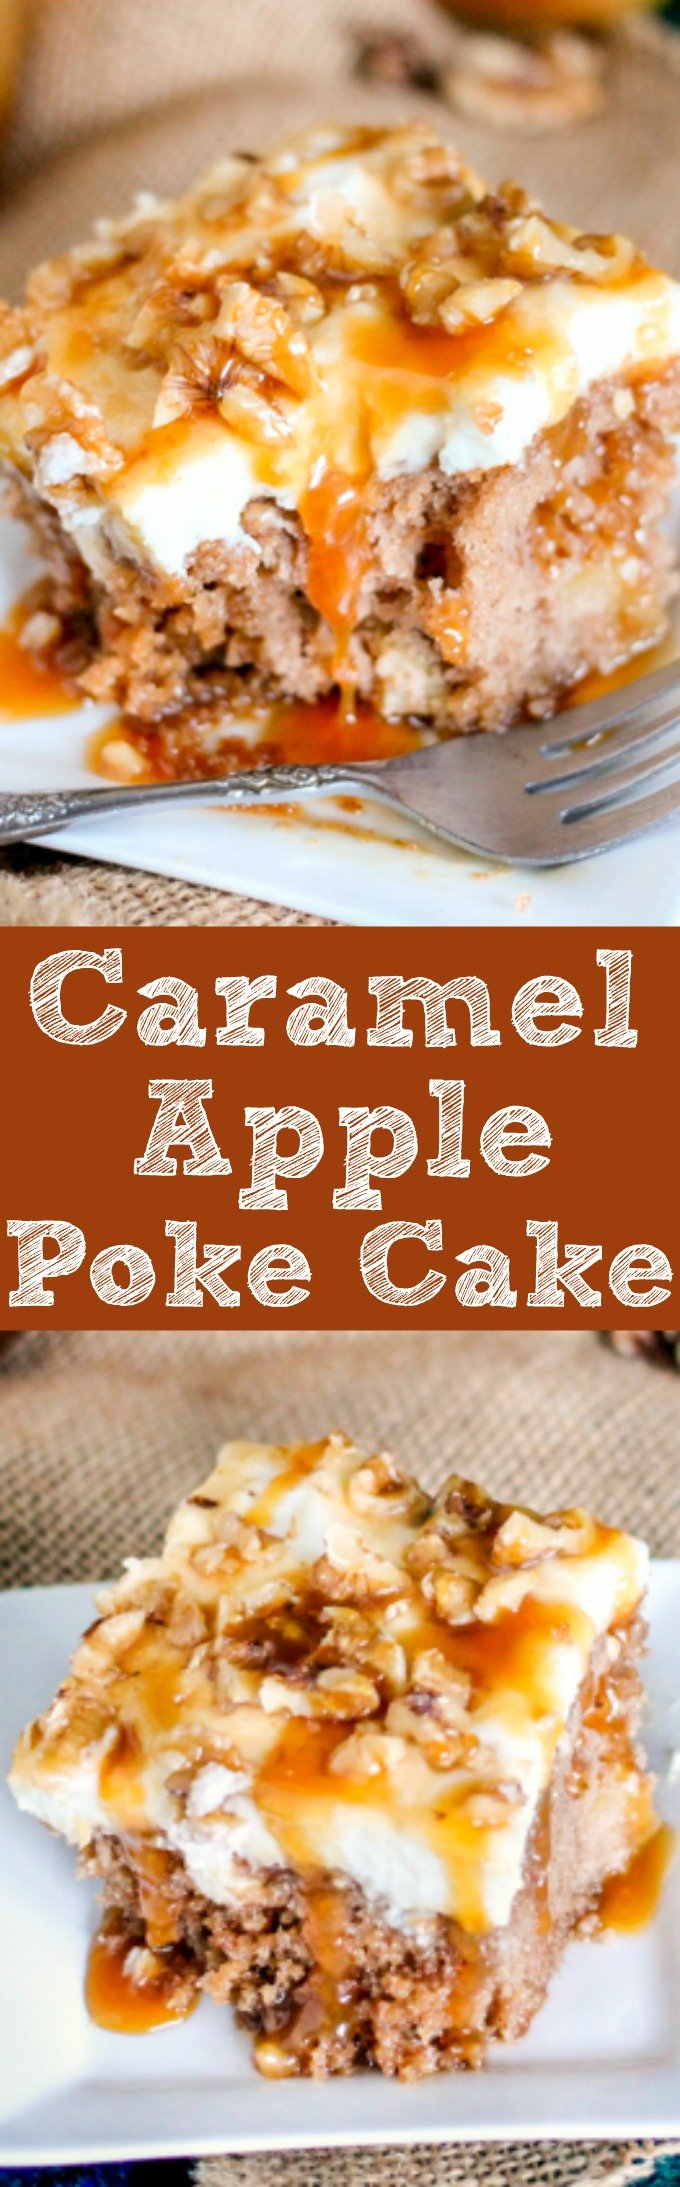 Caramel Apple Poke Cake is packed full of apples and then smothered in whipped cream and caramel. It's the easiest most delicious fall cake!